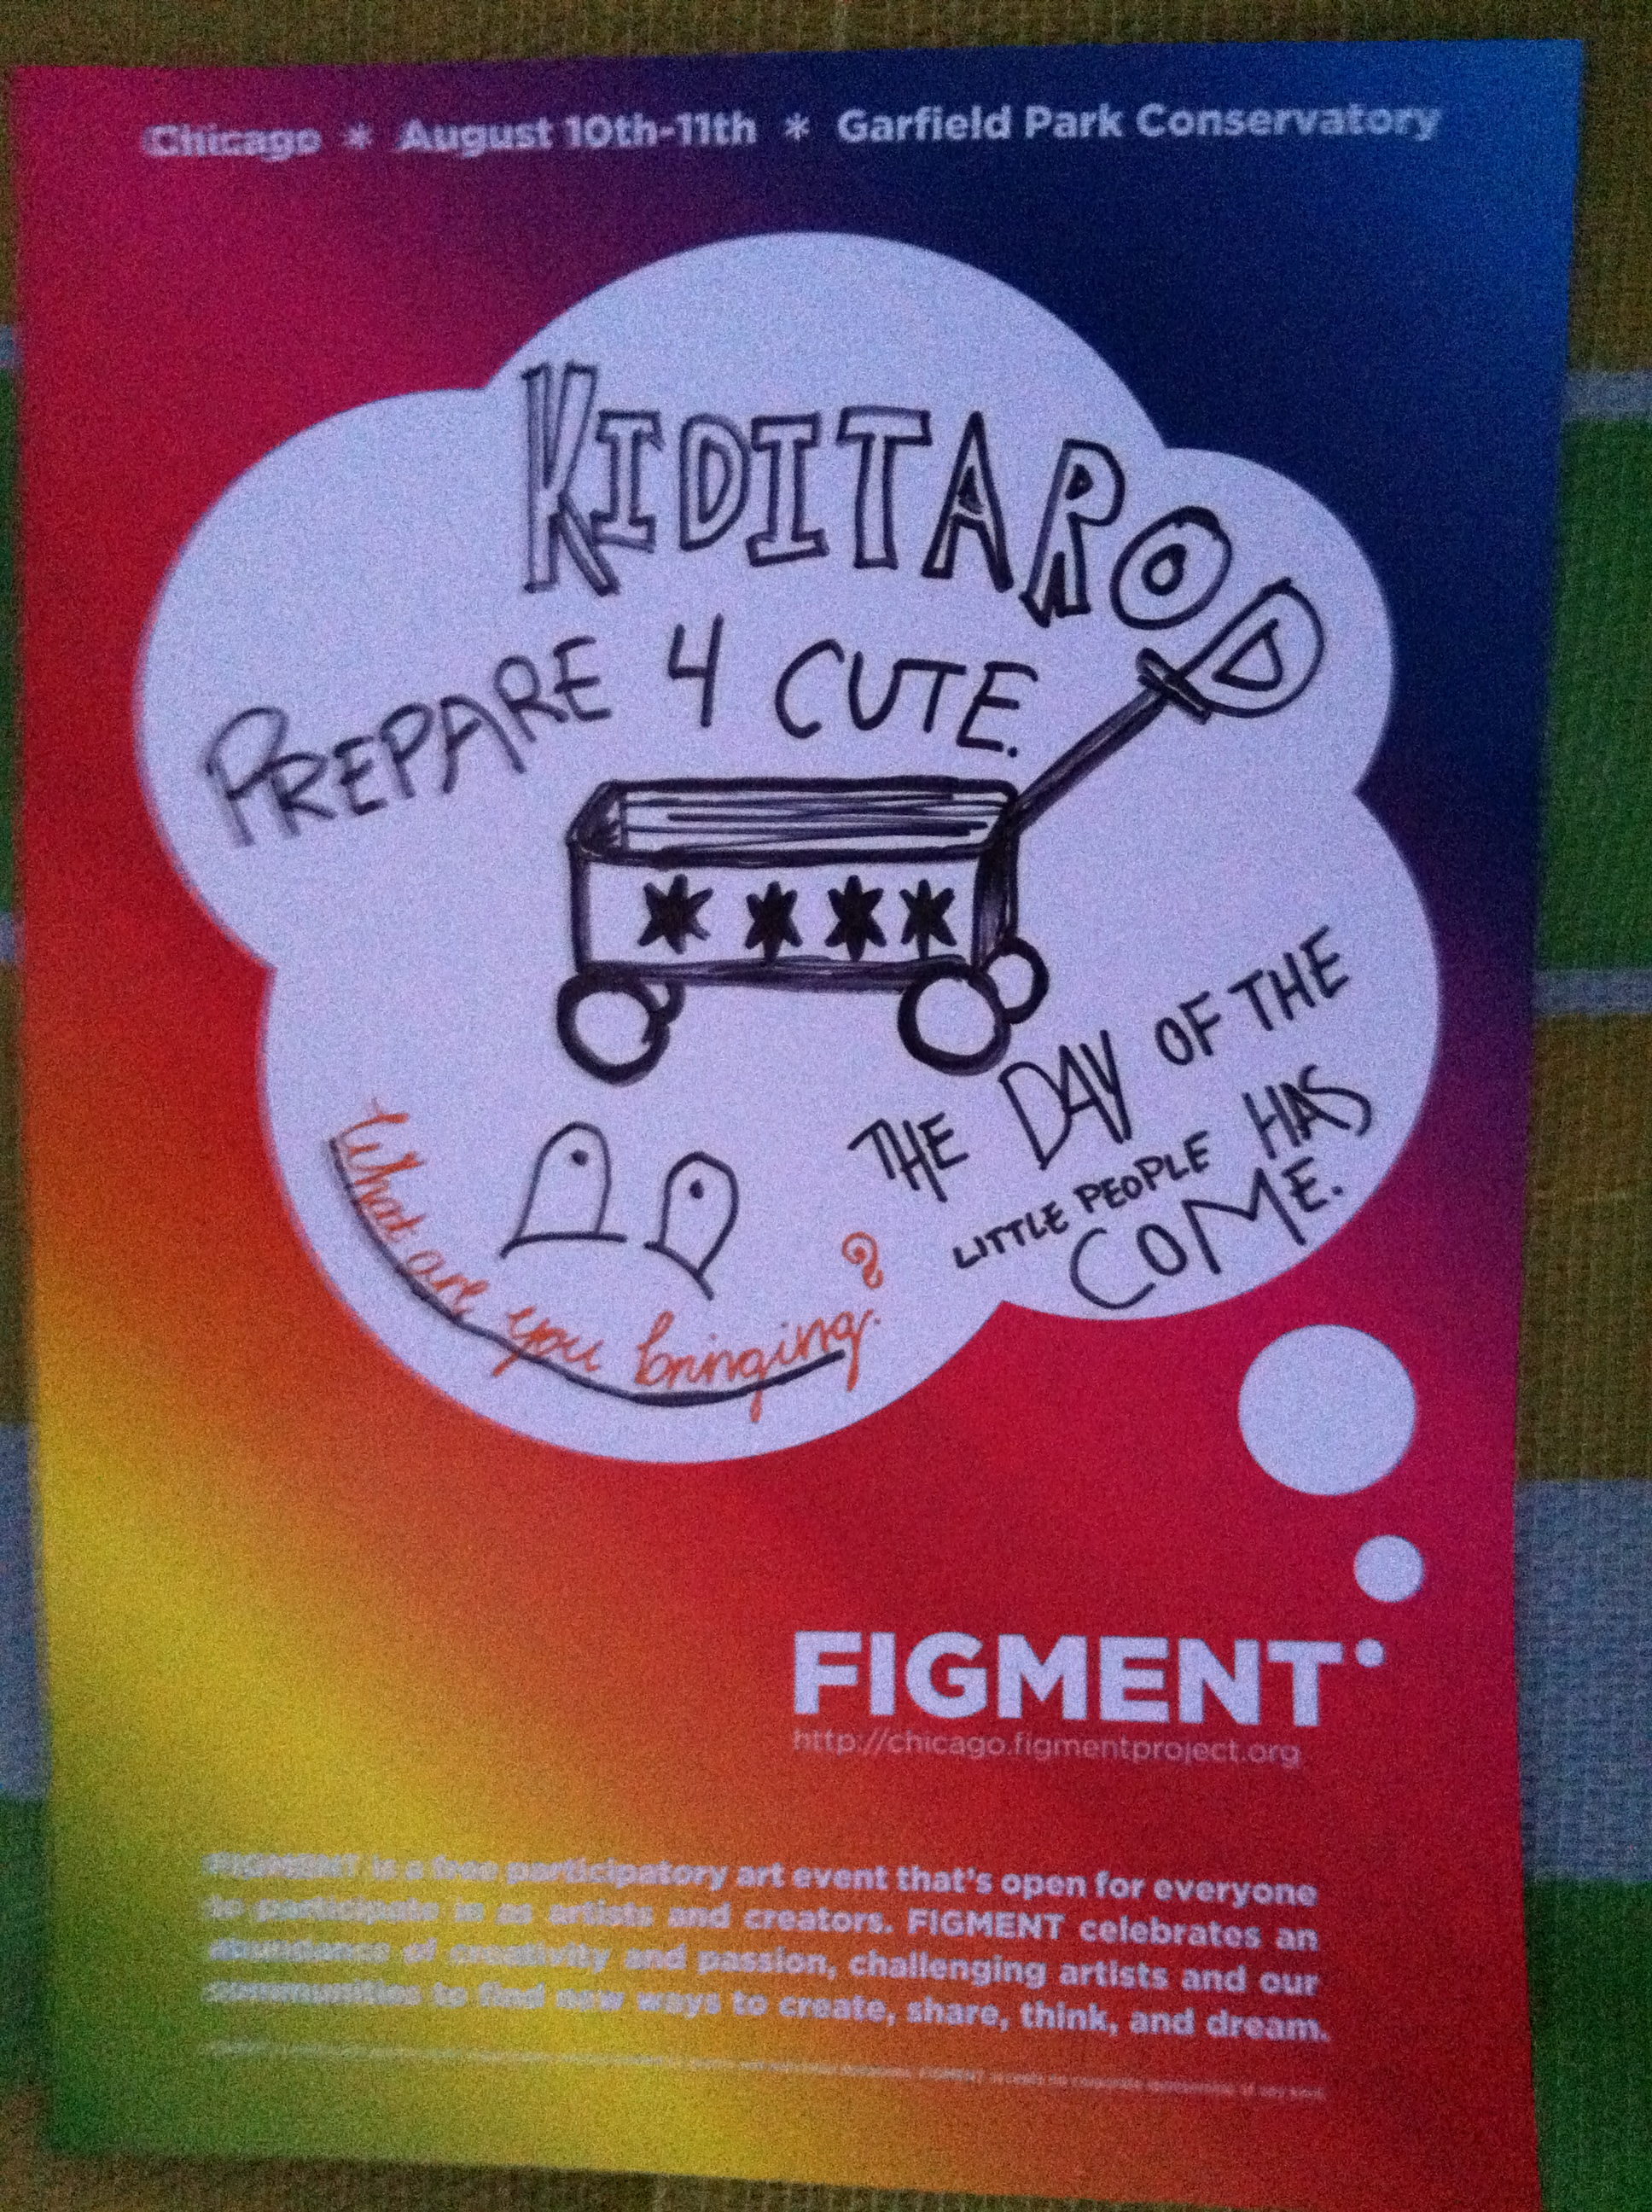 Kiditarod-at-2013-FIGMENT-hand-drawn-Poster.jpg